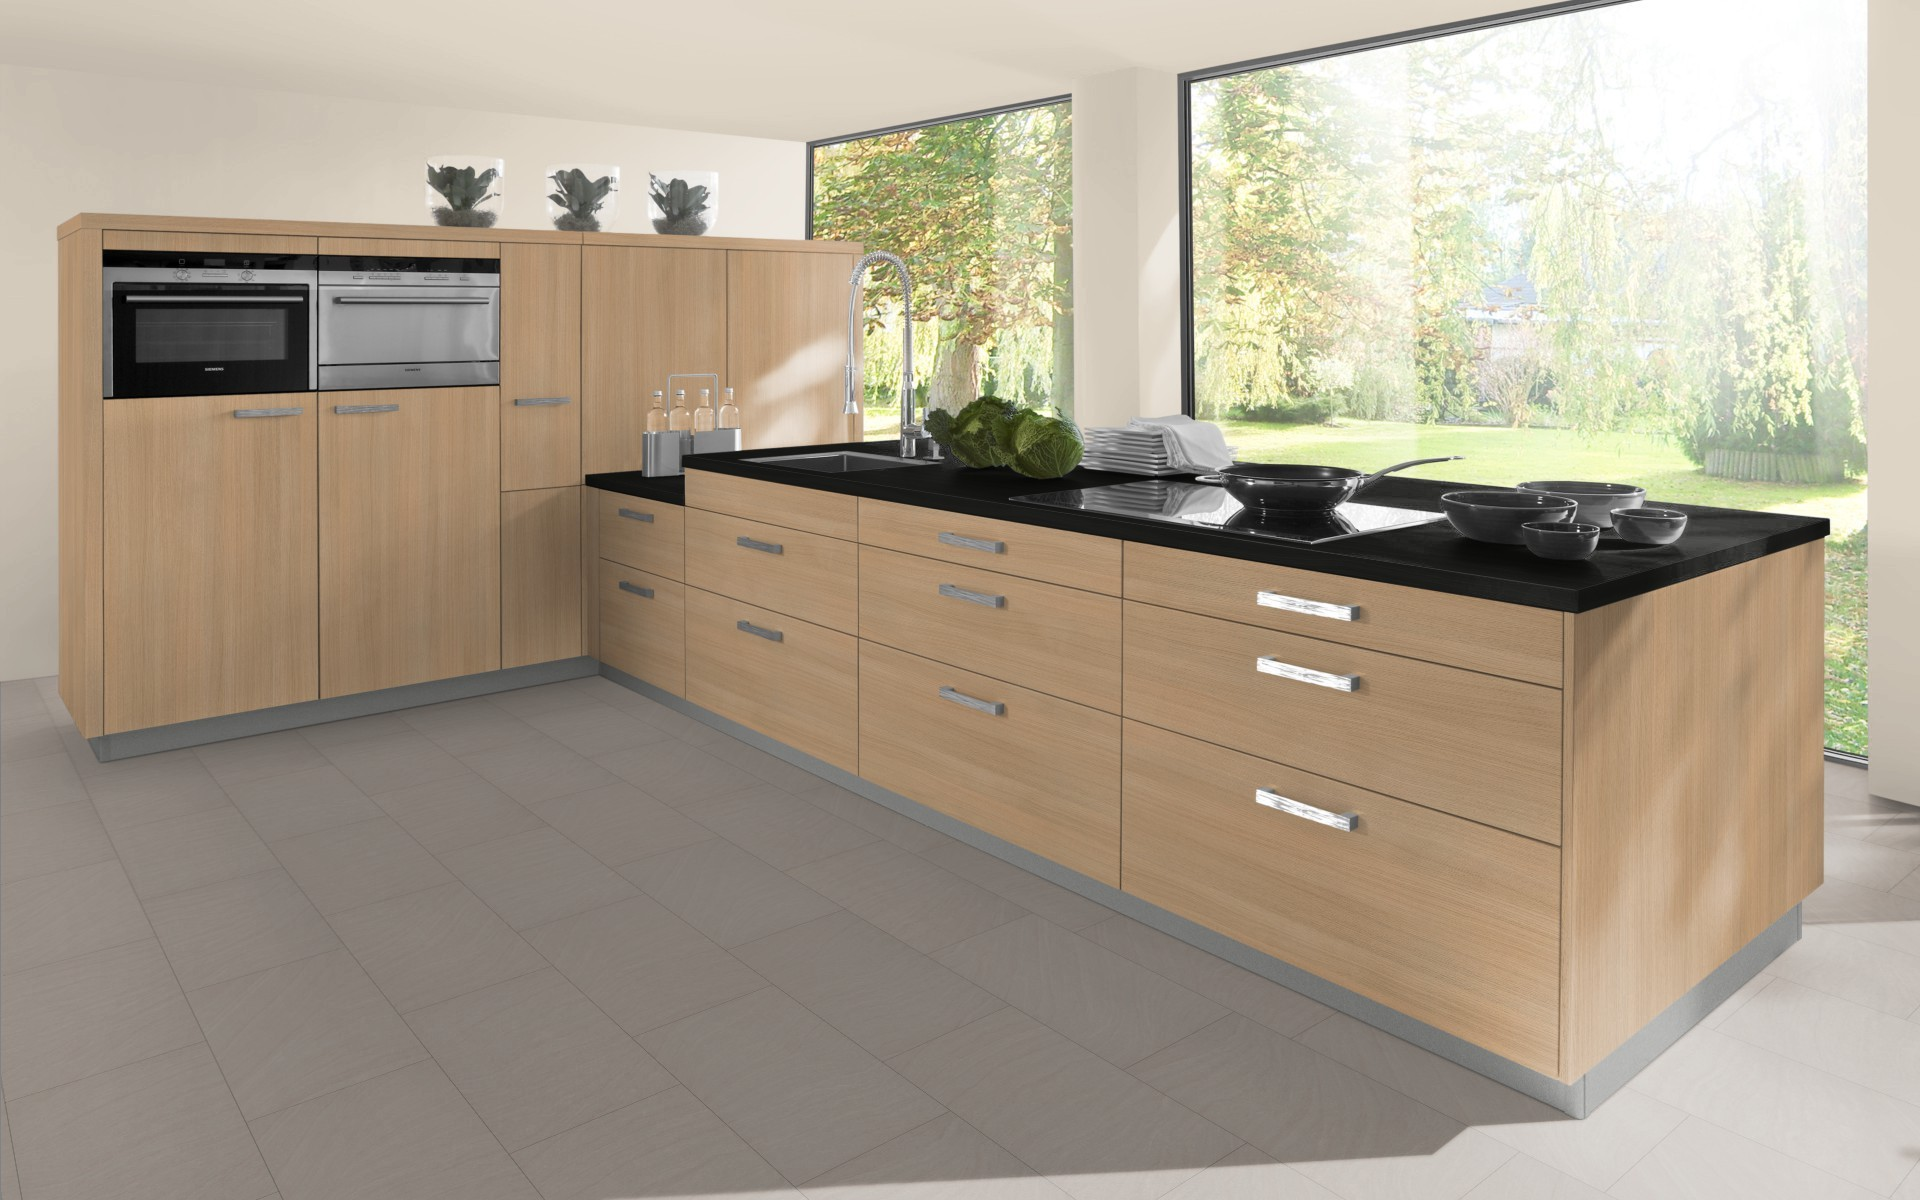 Classic Woodgrain Kitchen Door in Light Ferrara Oak